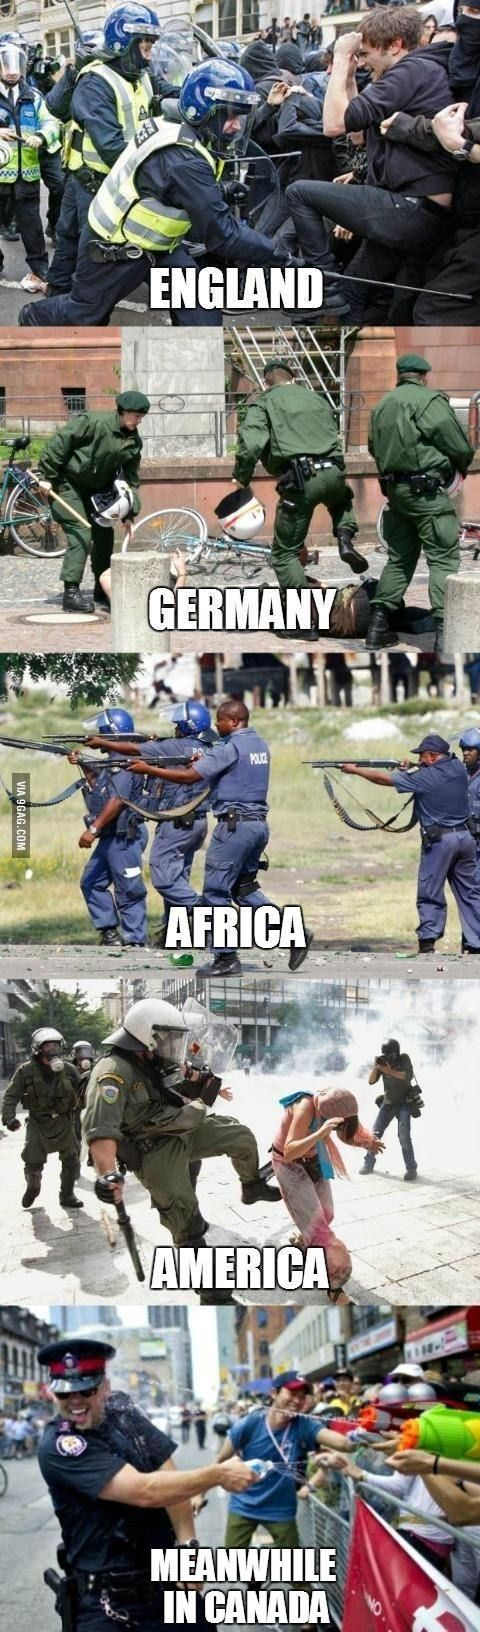 Police brutality across the world.